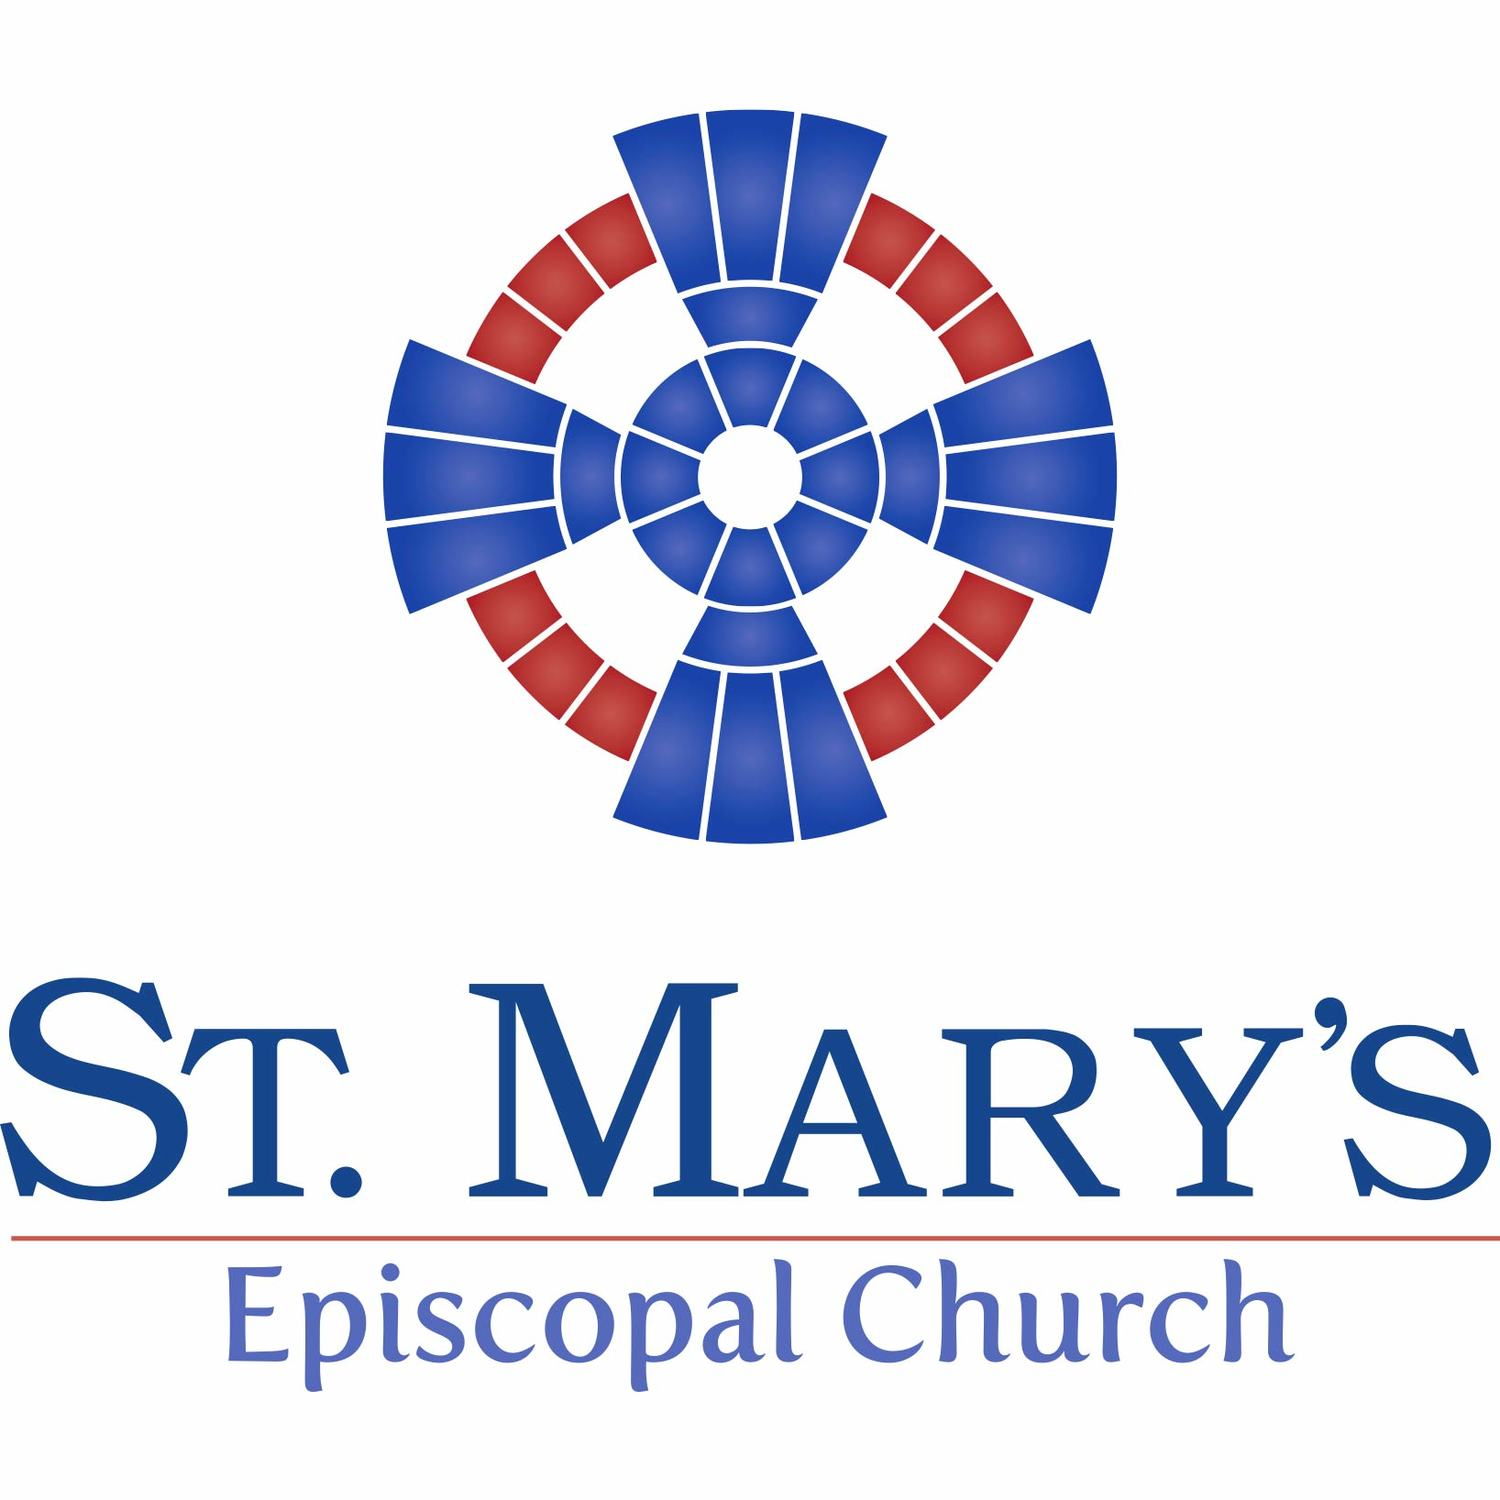 Sermons - St. Mary's Episcopal Church